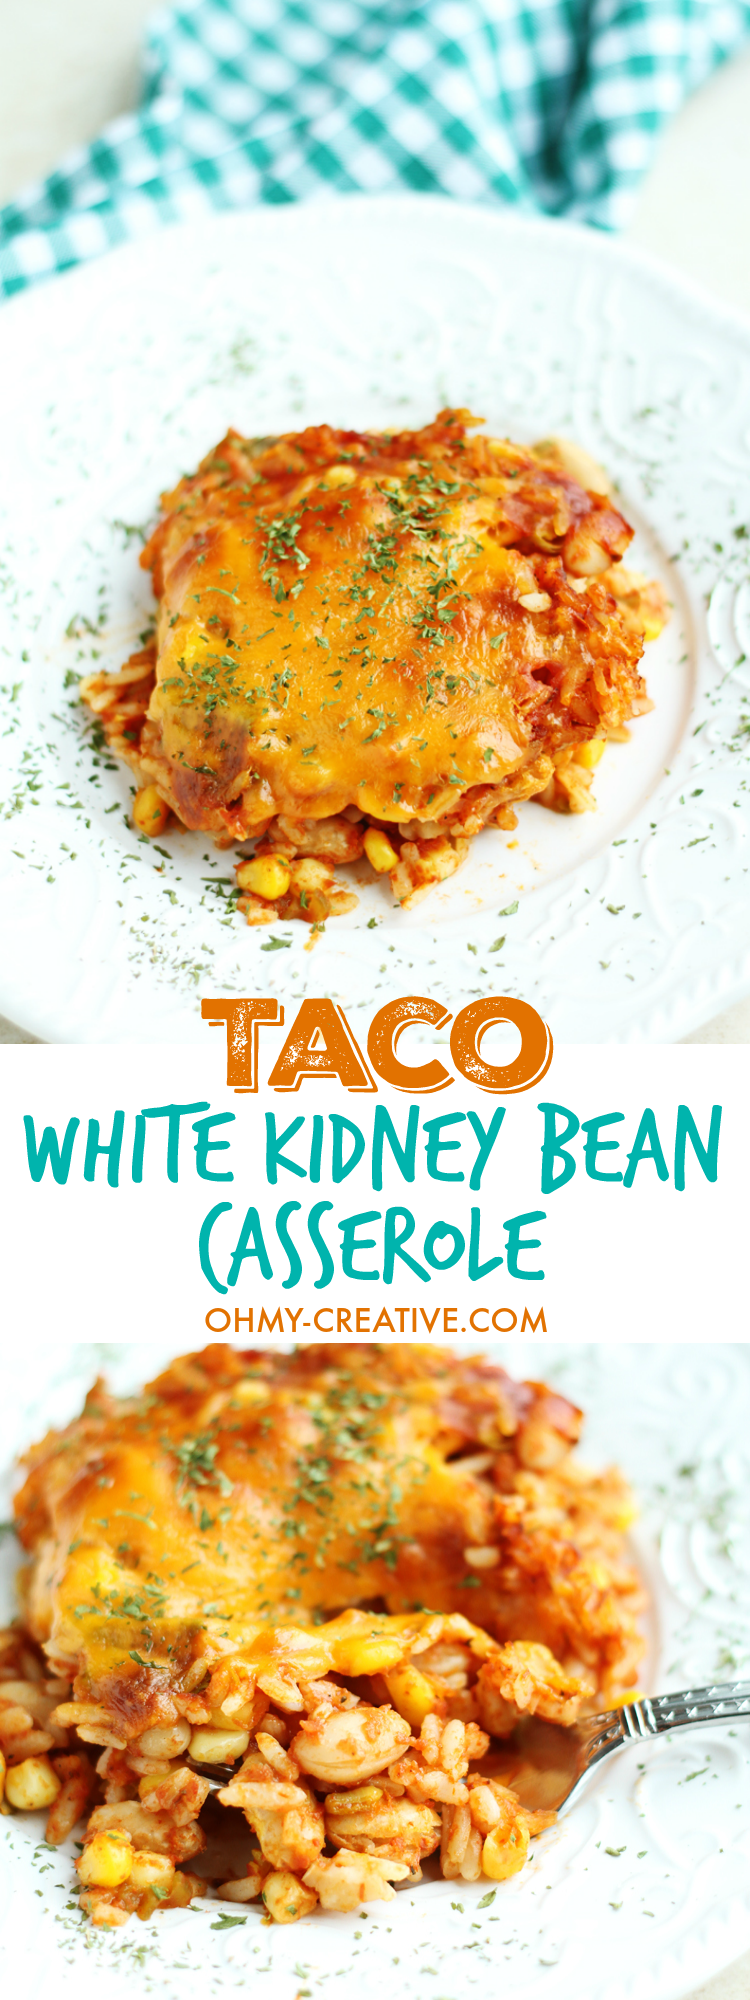 White Kidney Beans Taco Casserole Recipe - Vegetarian Taco casserole recipe with white kidney beans, rice, corn and cilantro topped with cheddar cheese. Perfect for weeknight dinner I OHMY-CREATIVE.COM